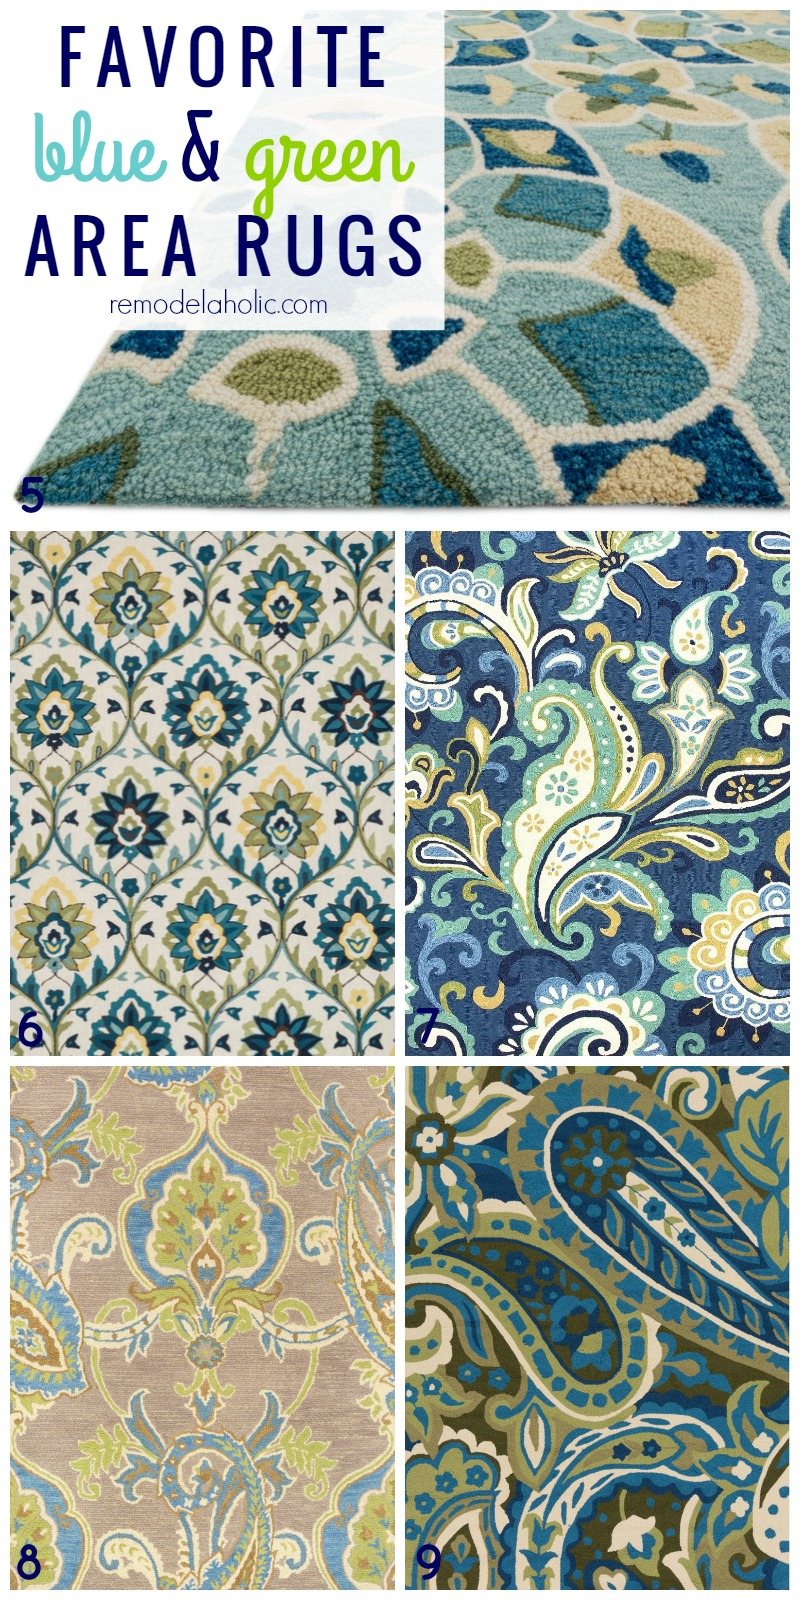 Top Picks For Green And Blue Area Rugs, Patterned, Paisley, Striped, Floral